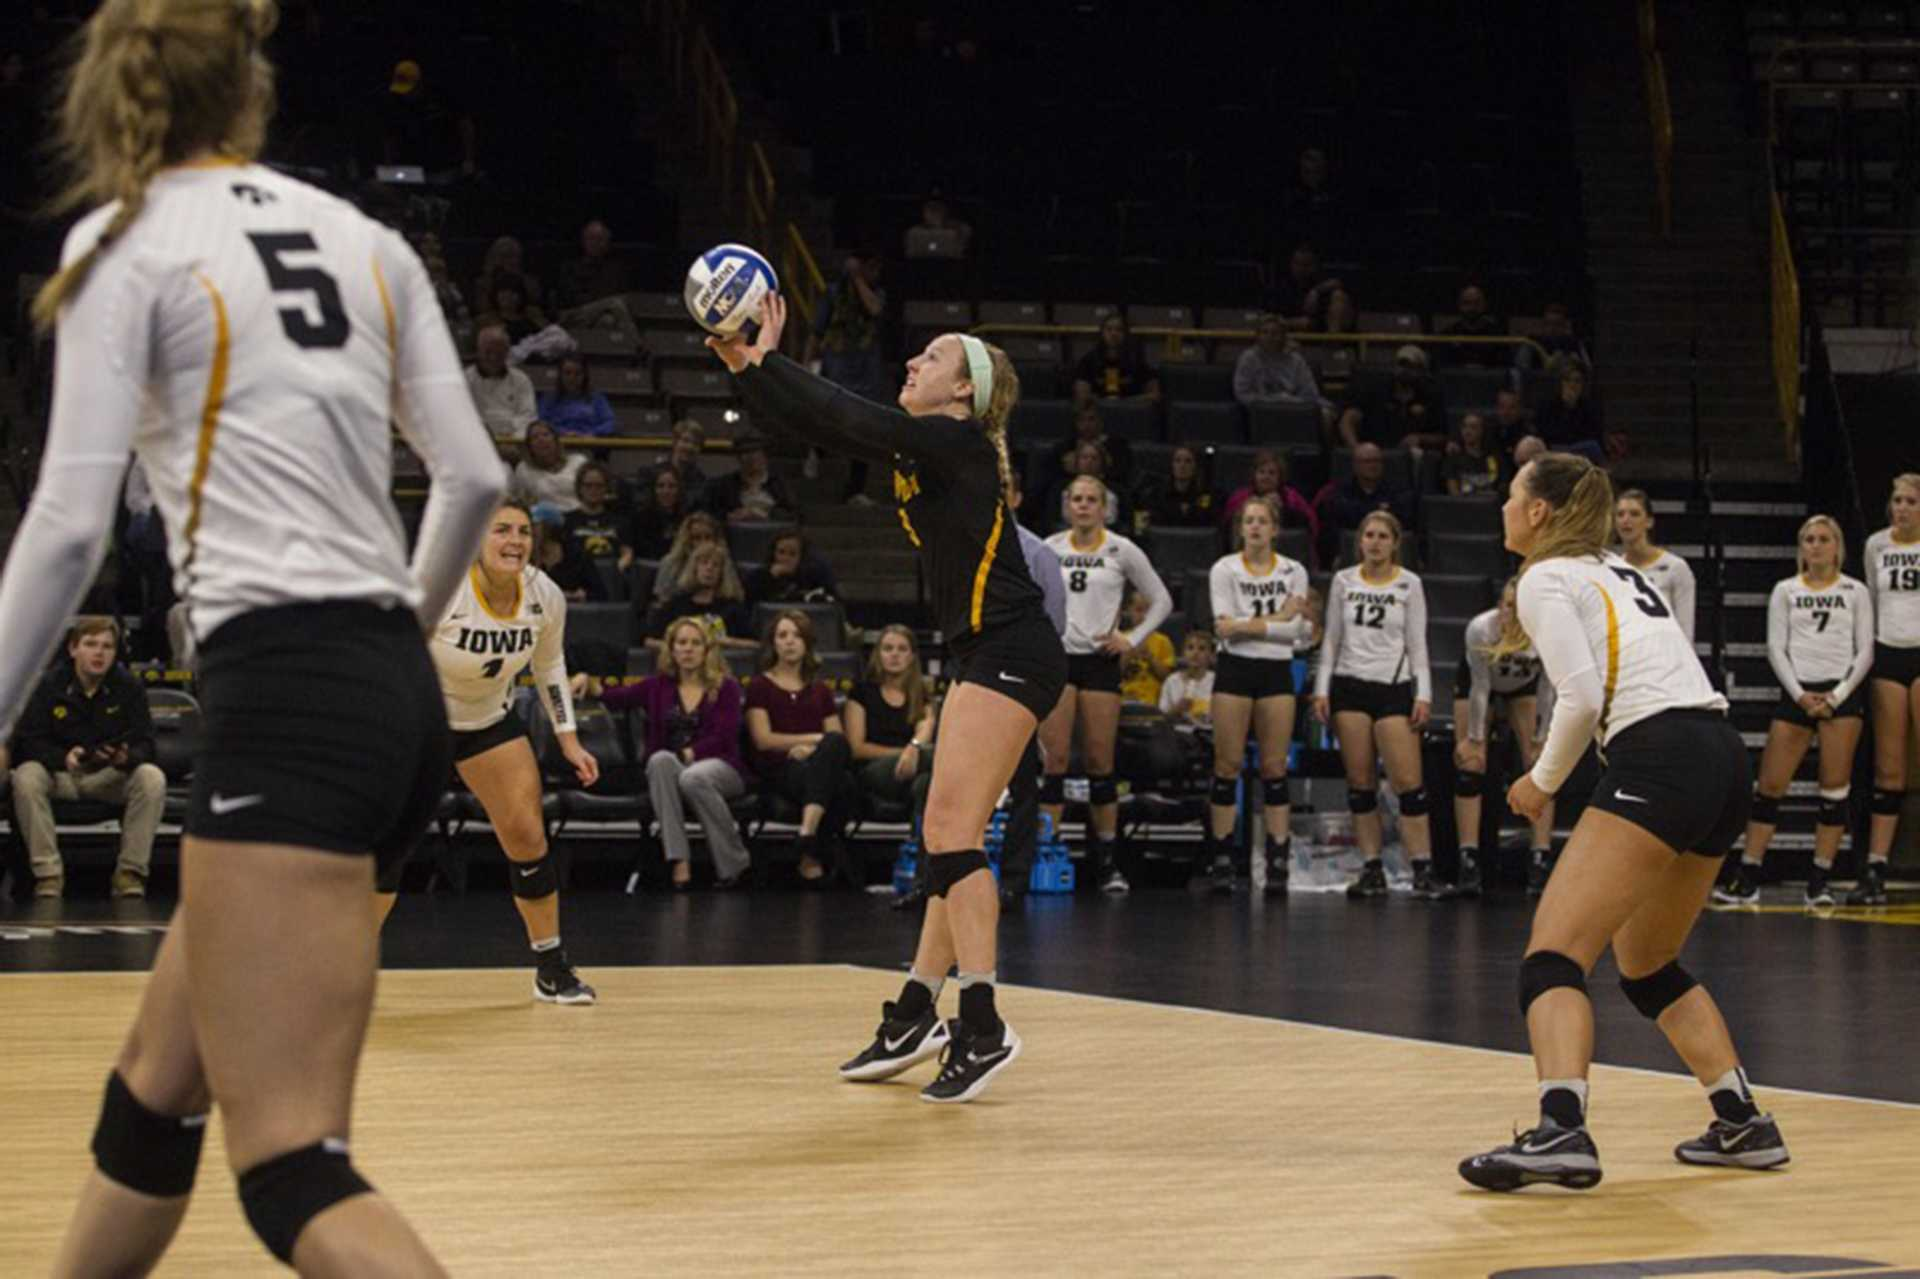 FILE - Iowa's No. 9 Annika Olsen receives the ball during a volleyball match at the Carver Hawkeye Arena in Iowa City on Friday, Oct 7, 2016. Iowa defeated Purdue 3-2. (The Daily Iowan/file)